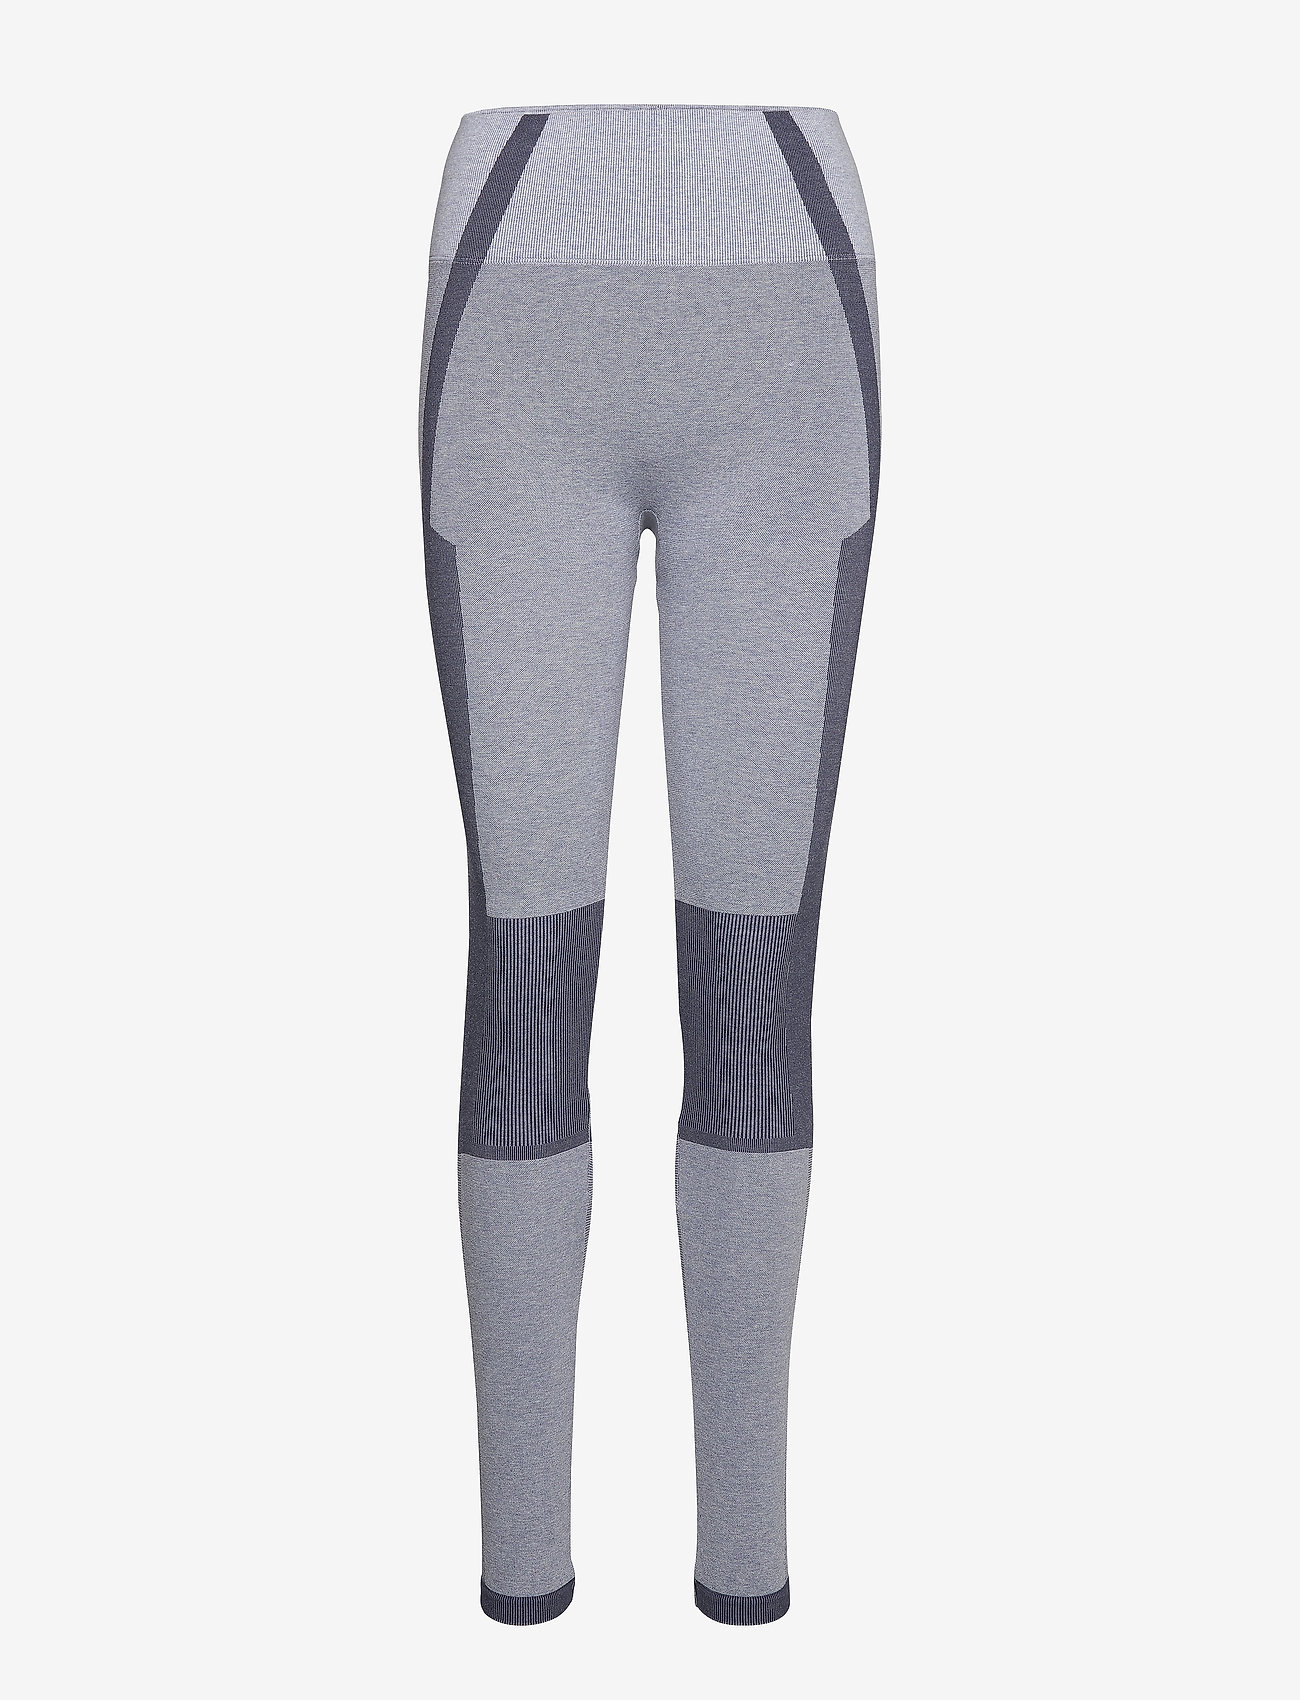 Nature X Seamless Tight (Dendus) - Reebok Performance 4OvV3q